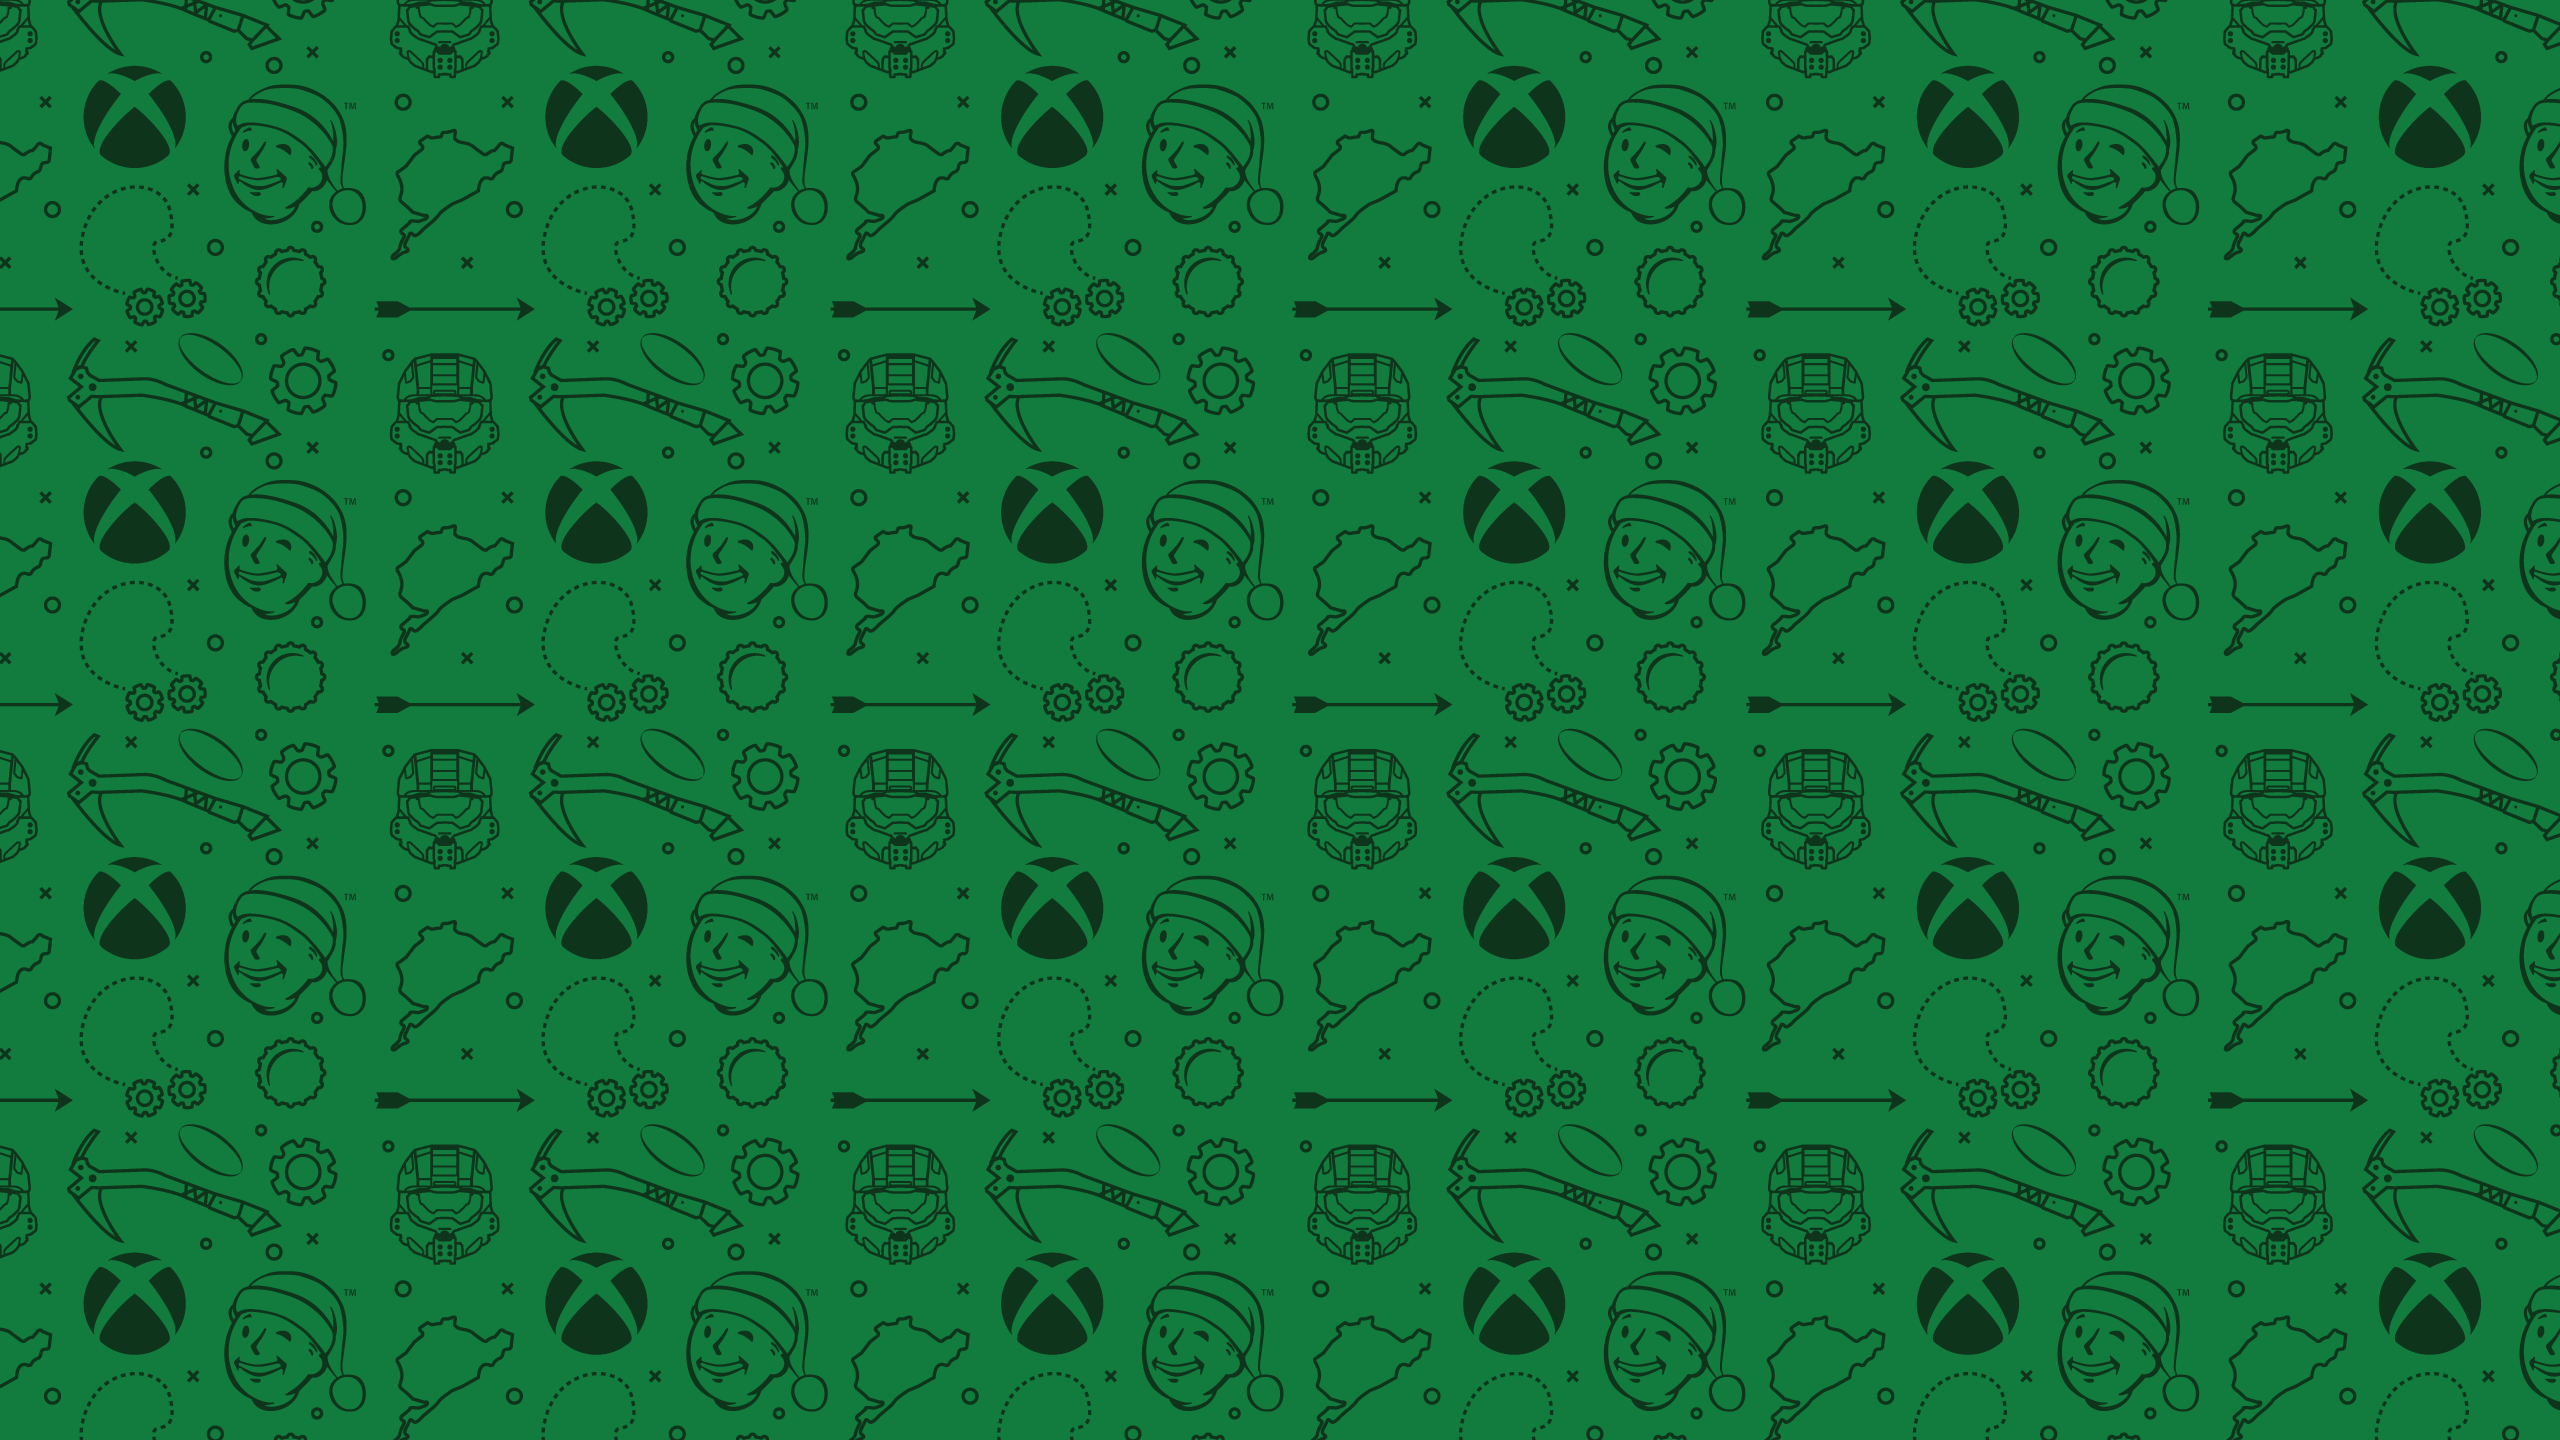 2560x1440 Ollie Hoff › Xbox Christmas Wrapping paper